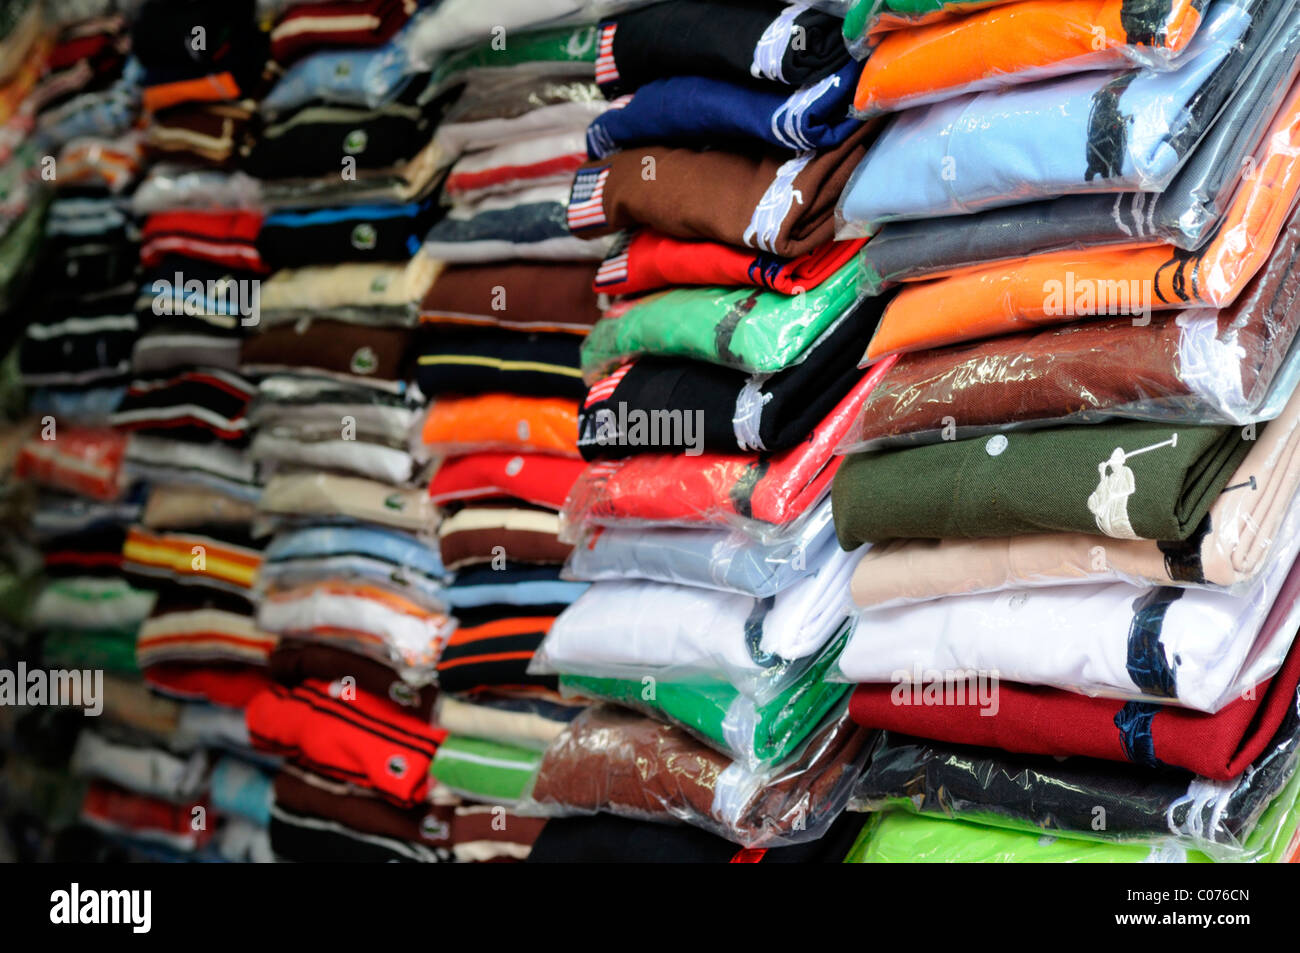 T shirt design kuala lumpur